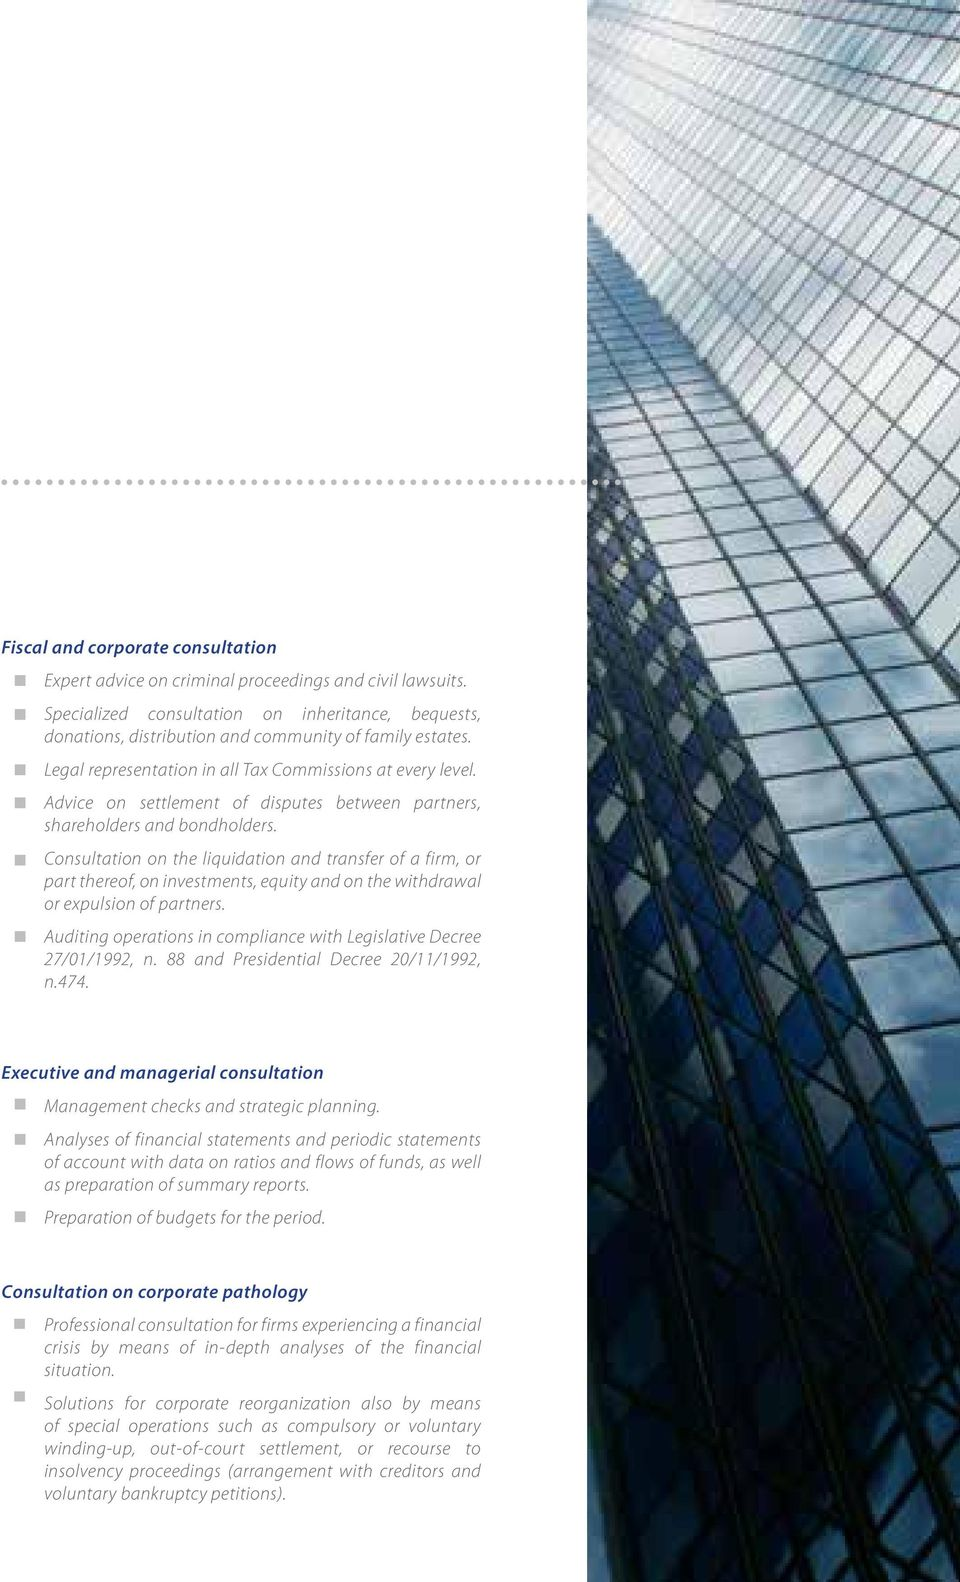 Consultation on the liquidation and transfer of a firm, or part thereof, on investments, equity and on the withdrawal or expulsion of partners.